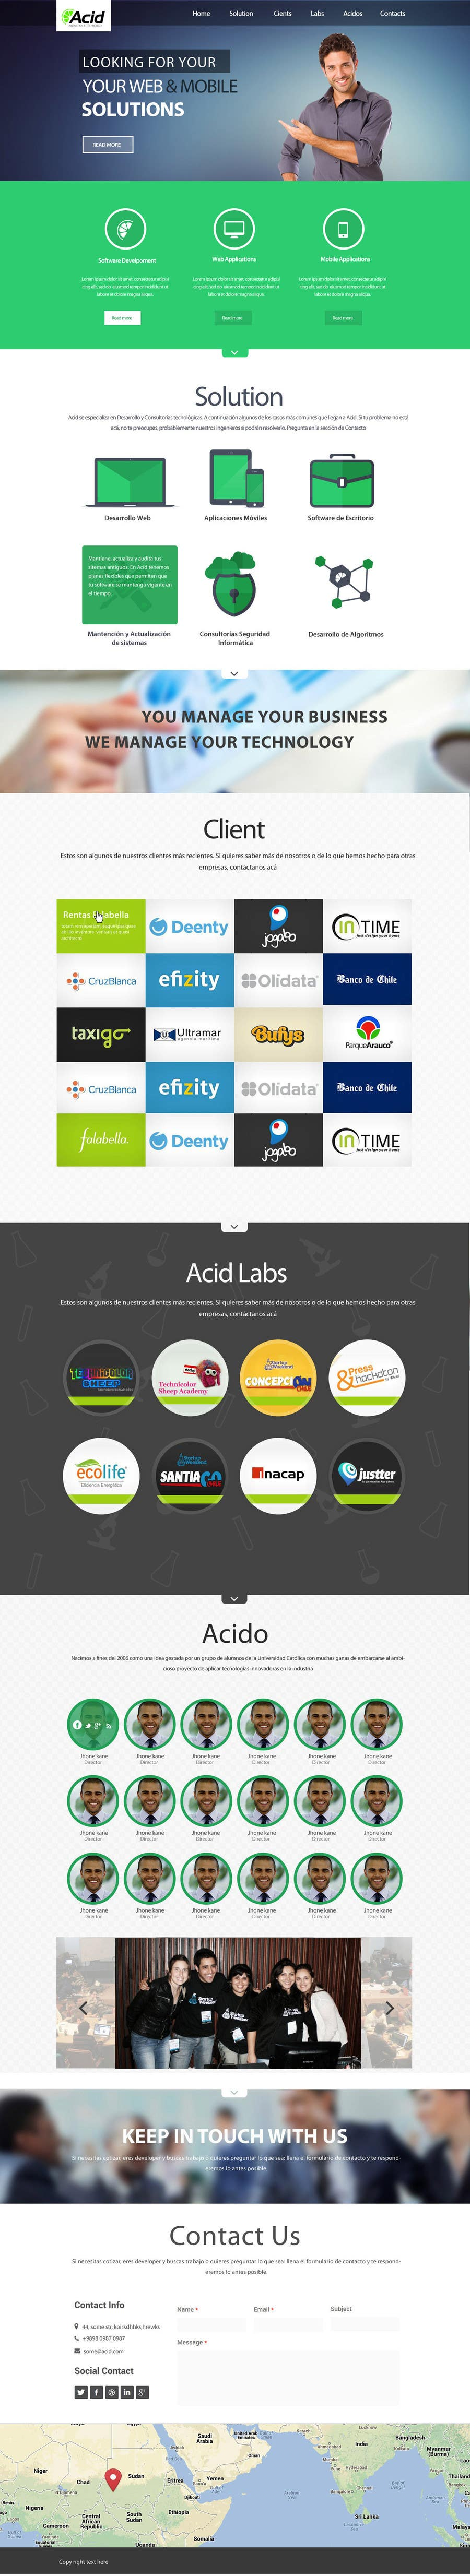 #49 for Develop a Corporate Identity for Acid Labs by SadunKodagoda